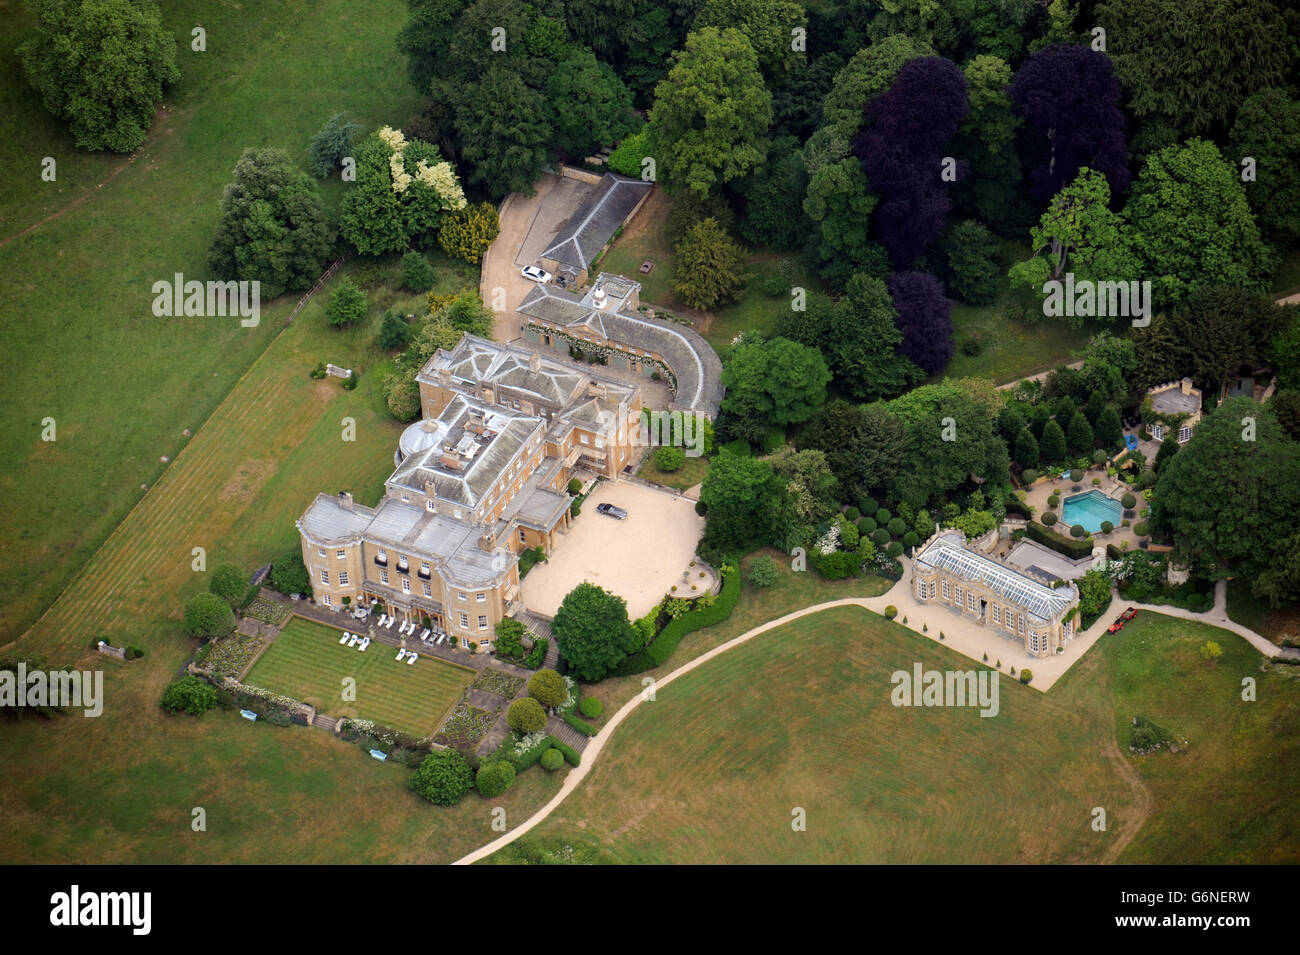 Aerial view of daylesford house near stow on the wold for See images of my house